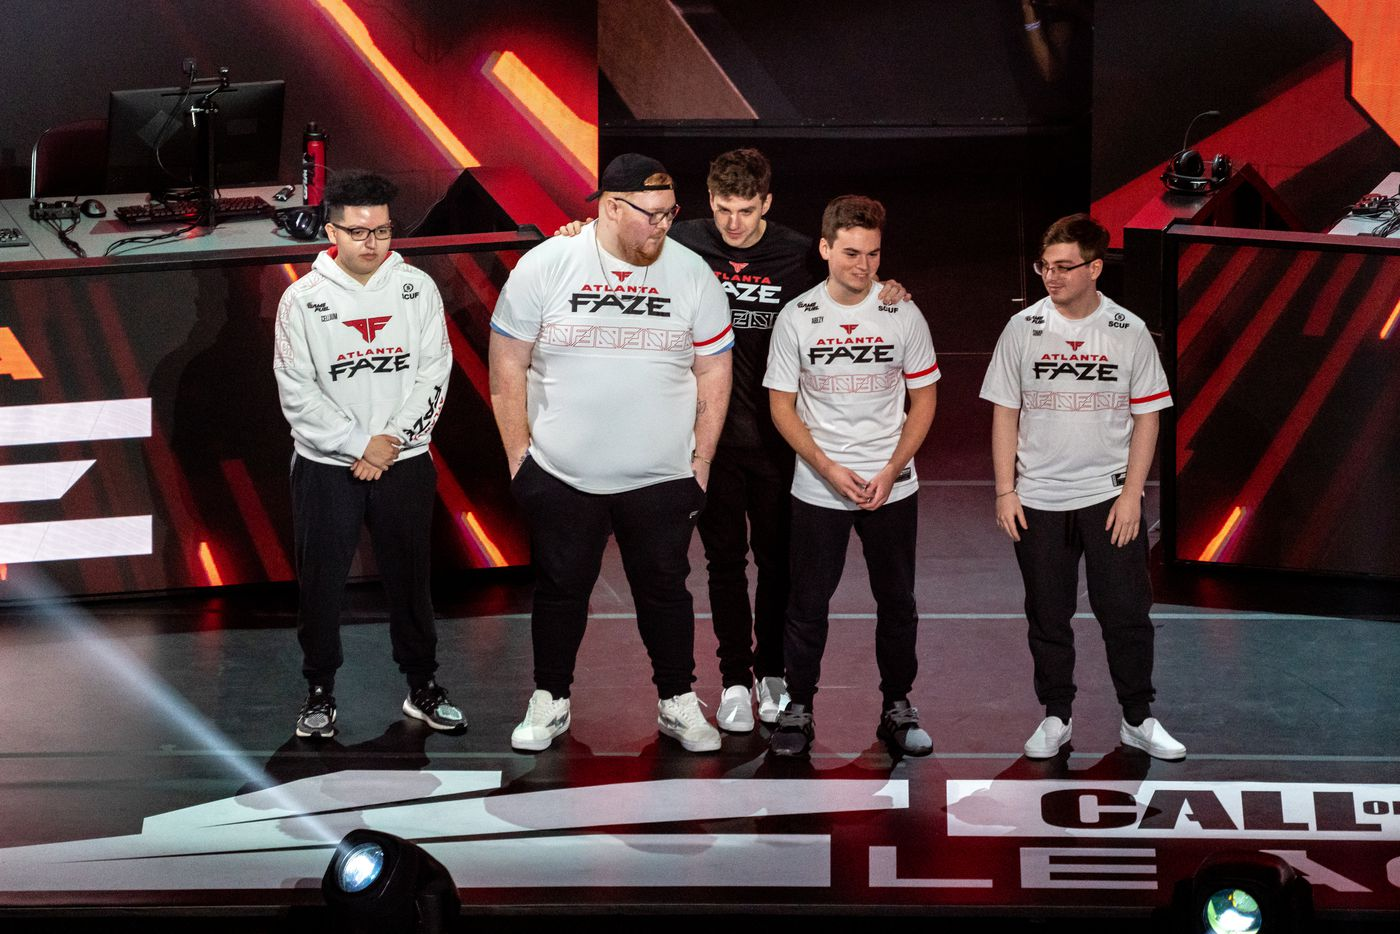 The Atlanta FaZe is introduced at the start of the winners final of the Call of Duty league playoffs at the Galen Center on Saturday, August 21, 2021 in Los Angeles, California. The Empire lost to FaZe 0 - 3 in their first match of the day but are still in contention to play in the finals through the elimination finals. (Justin L. Stewart/Special Contributor)